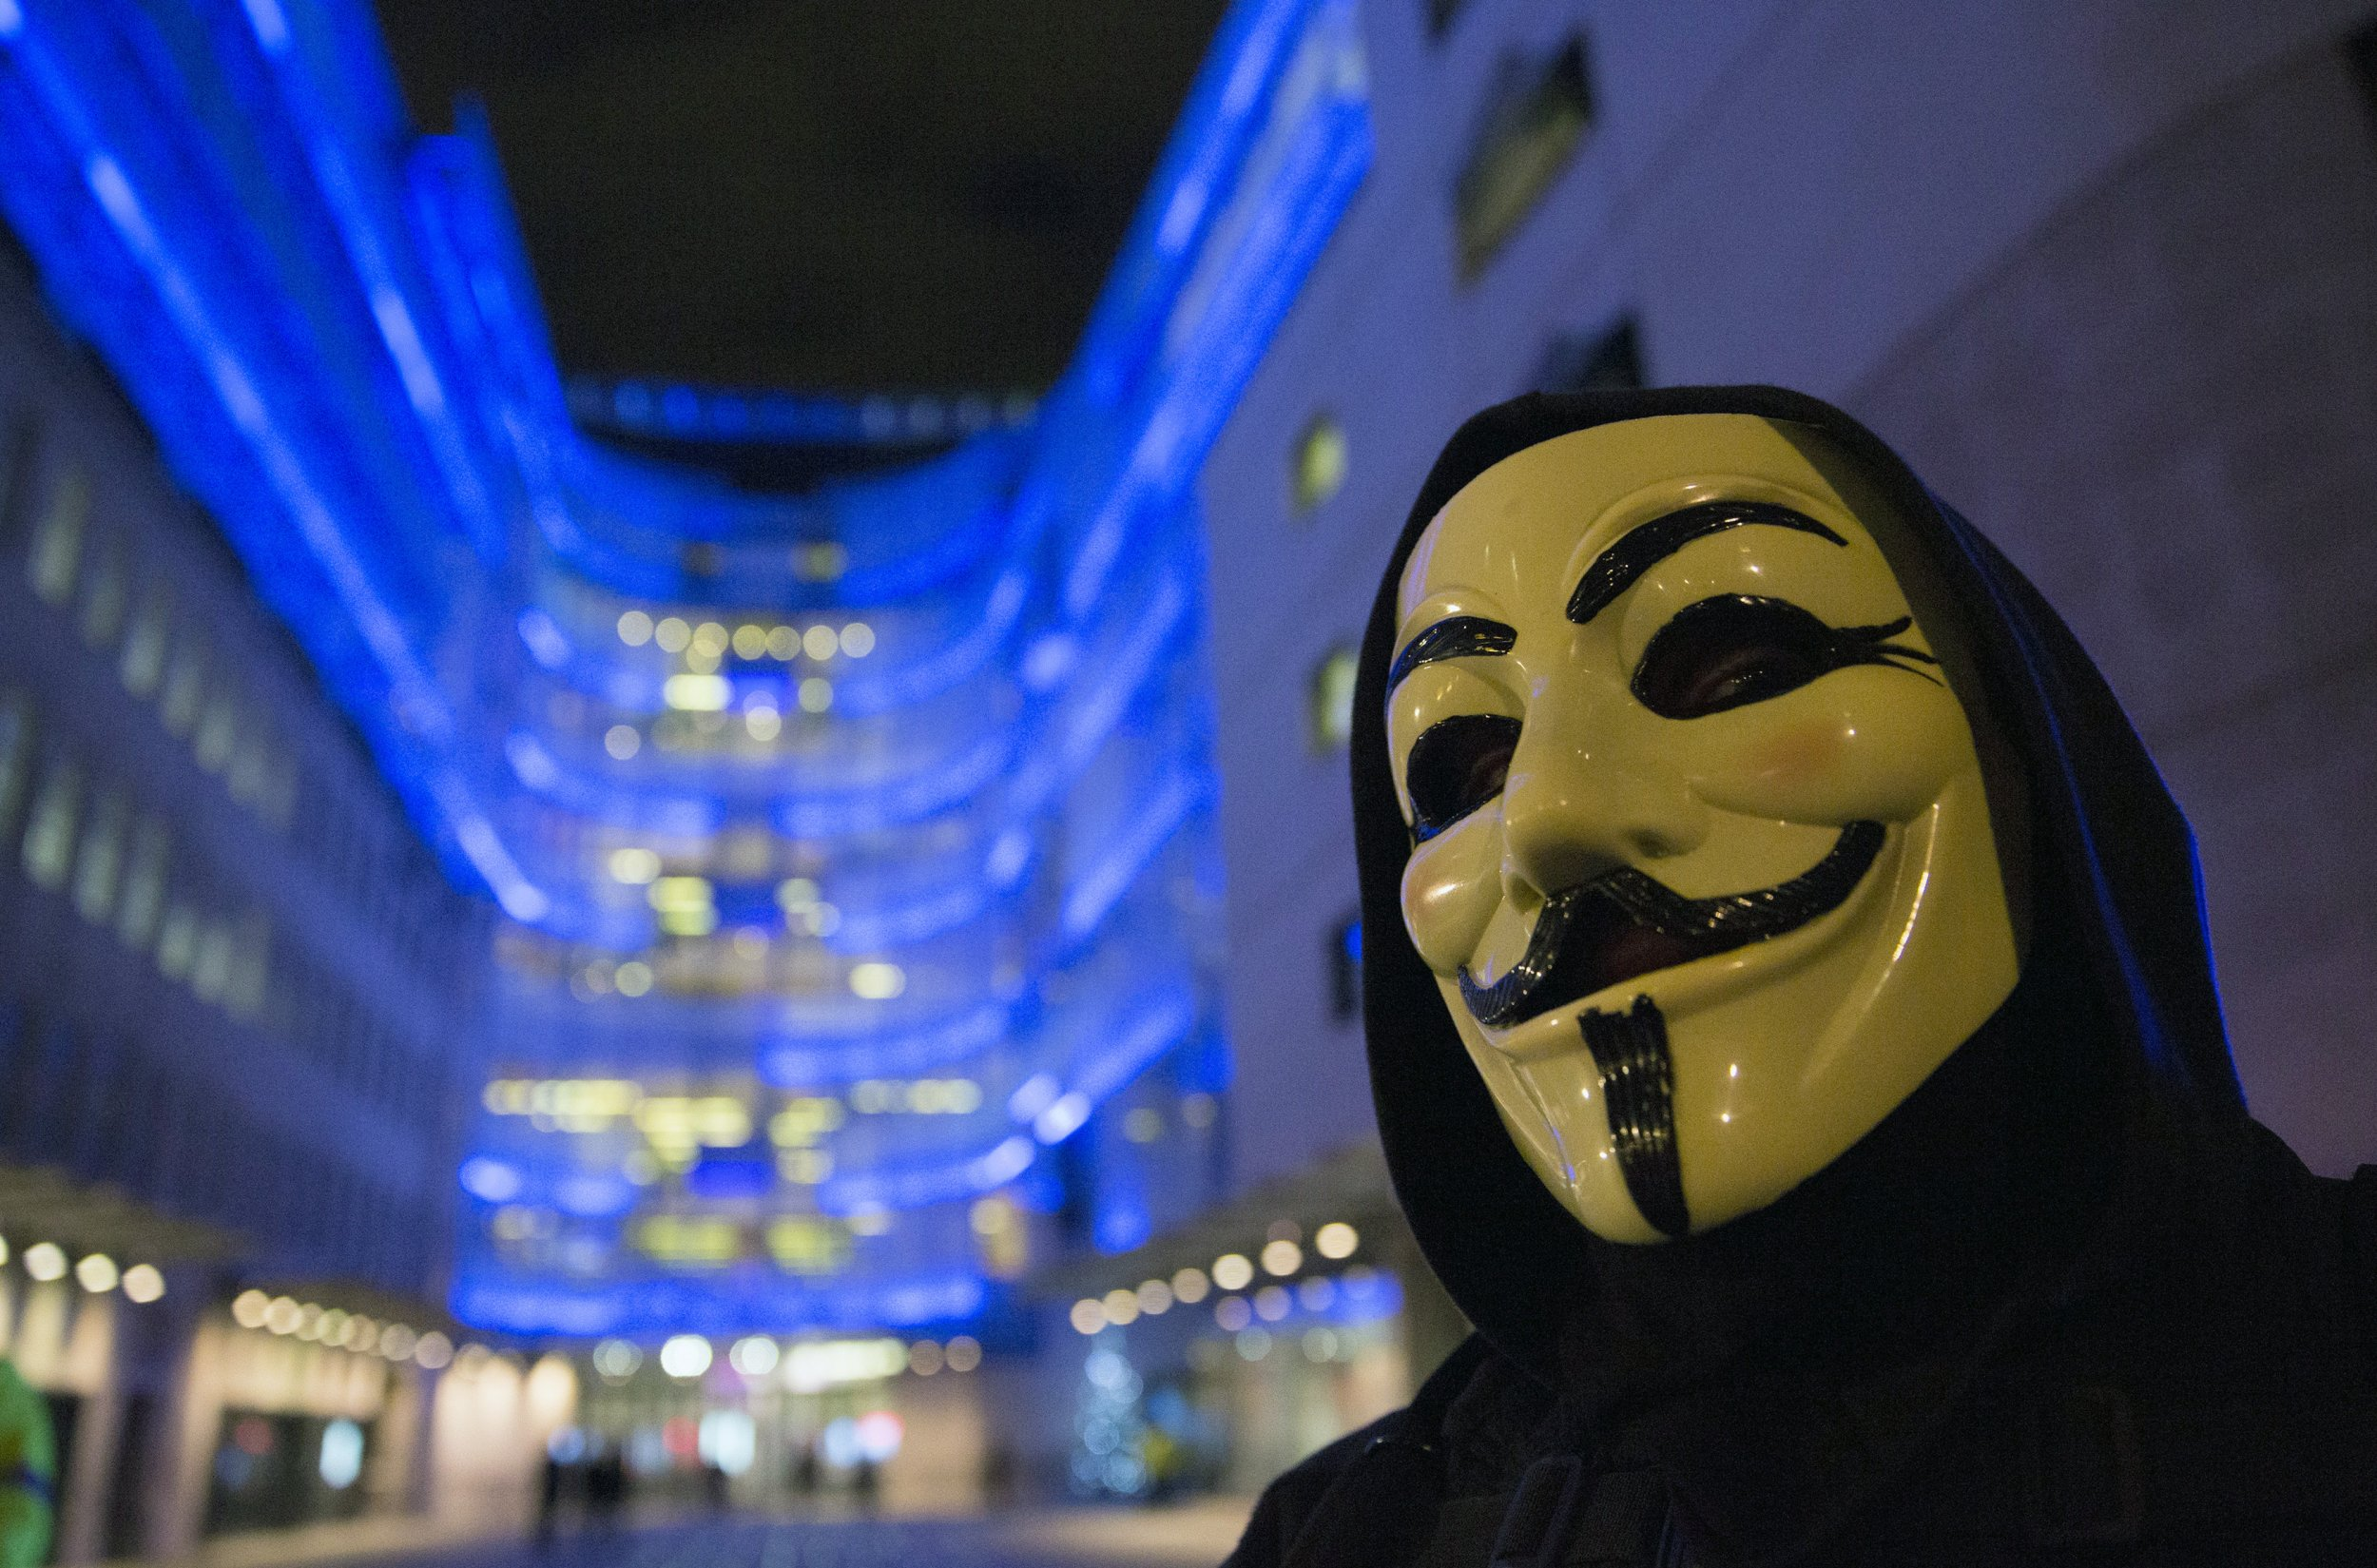 Anonymous Call UK Protest Against 'Paedophiles in the System